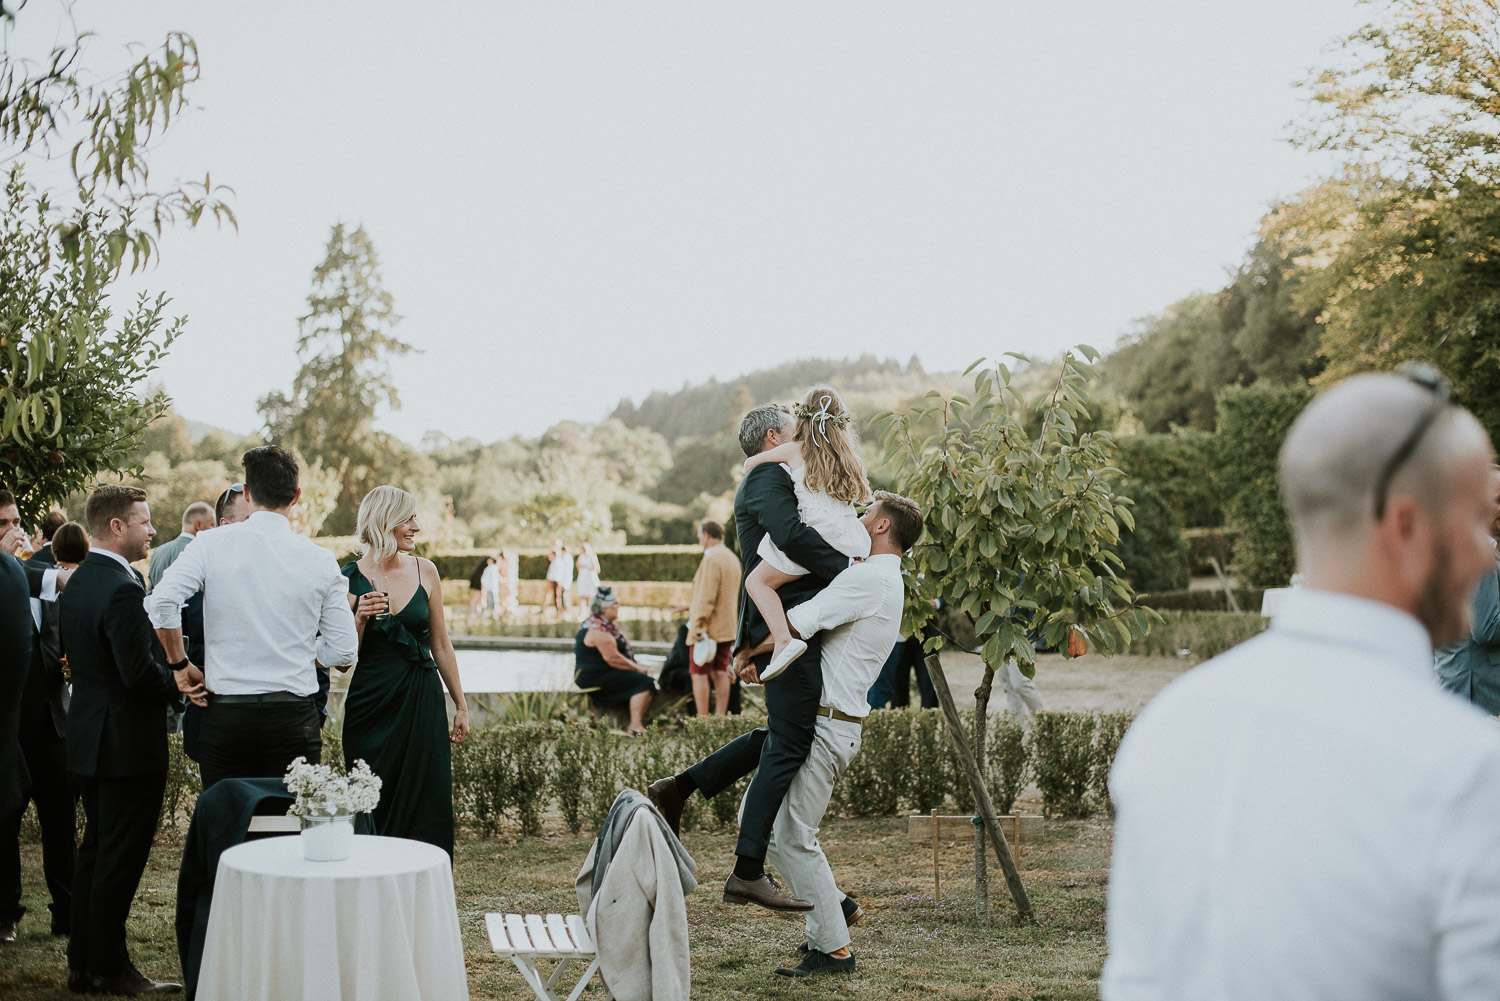 bergerac_wedding_katy_webb_photography_france_UK116